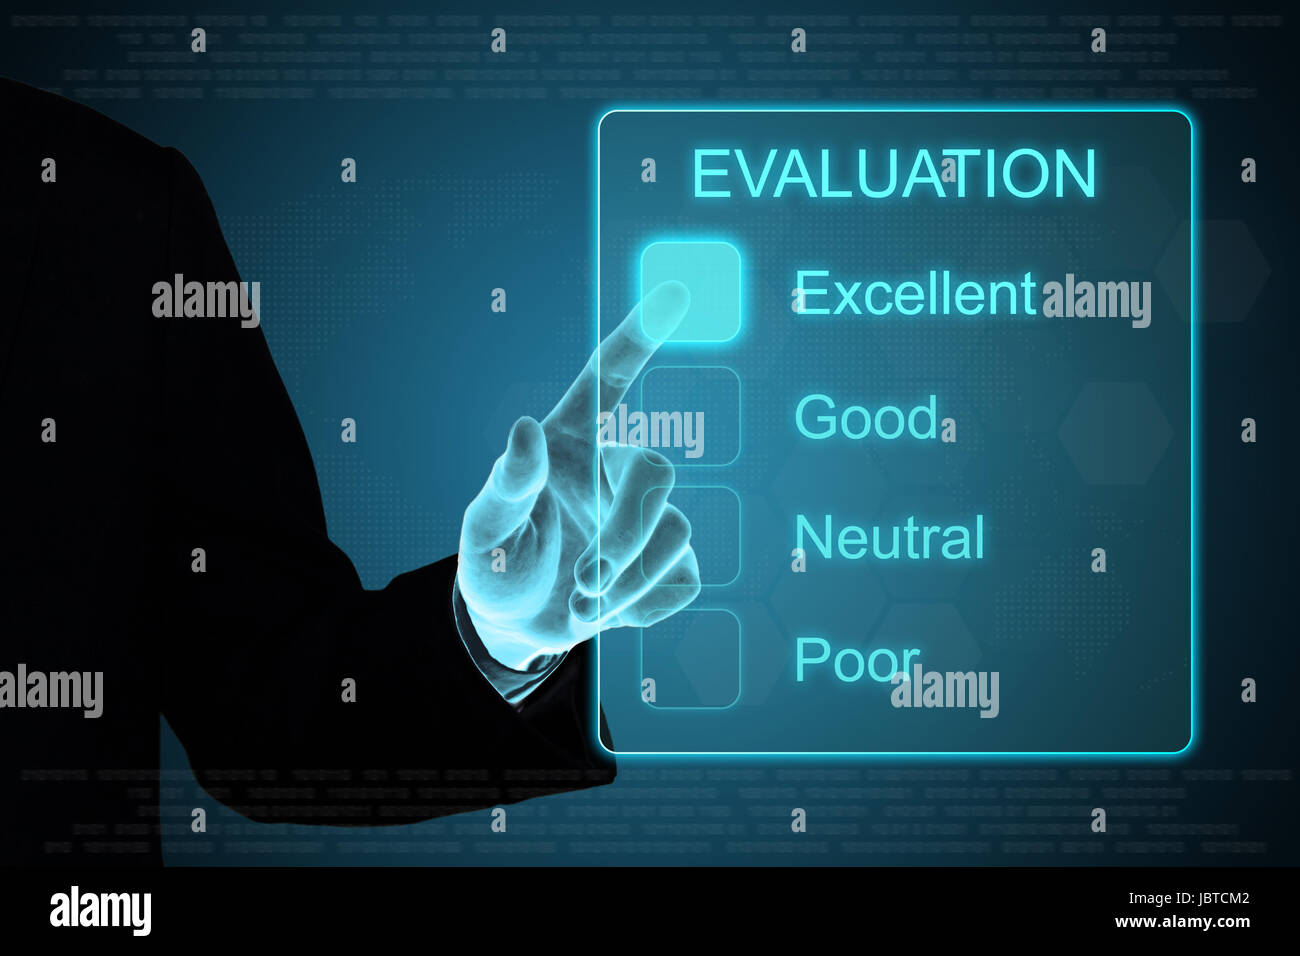 business hand pushing evaluation feedback on a touch screen interface - Stock Image